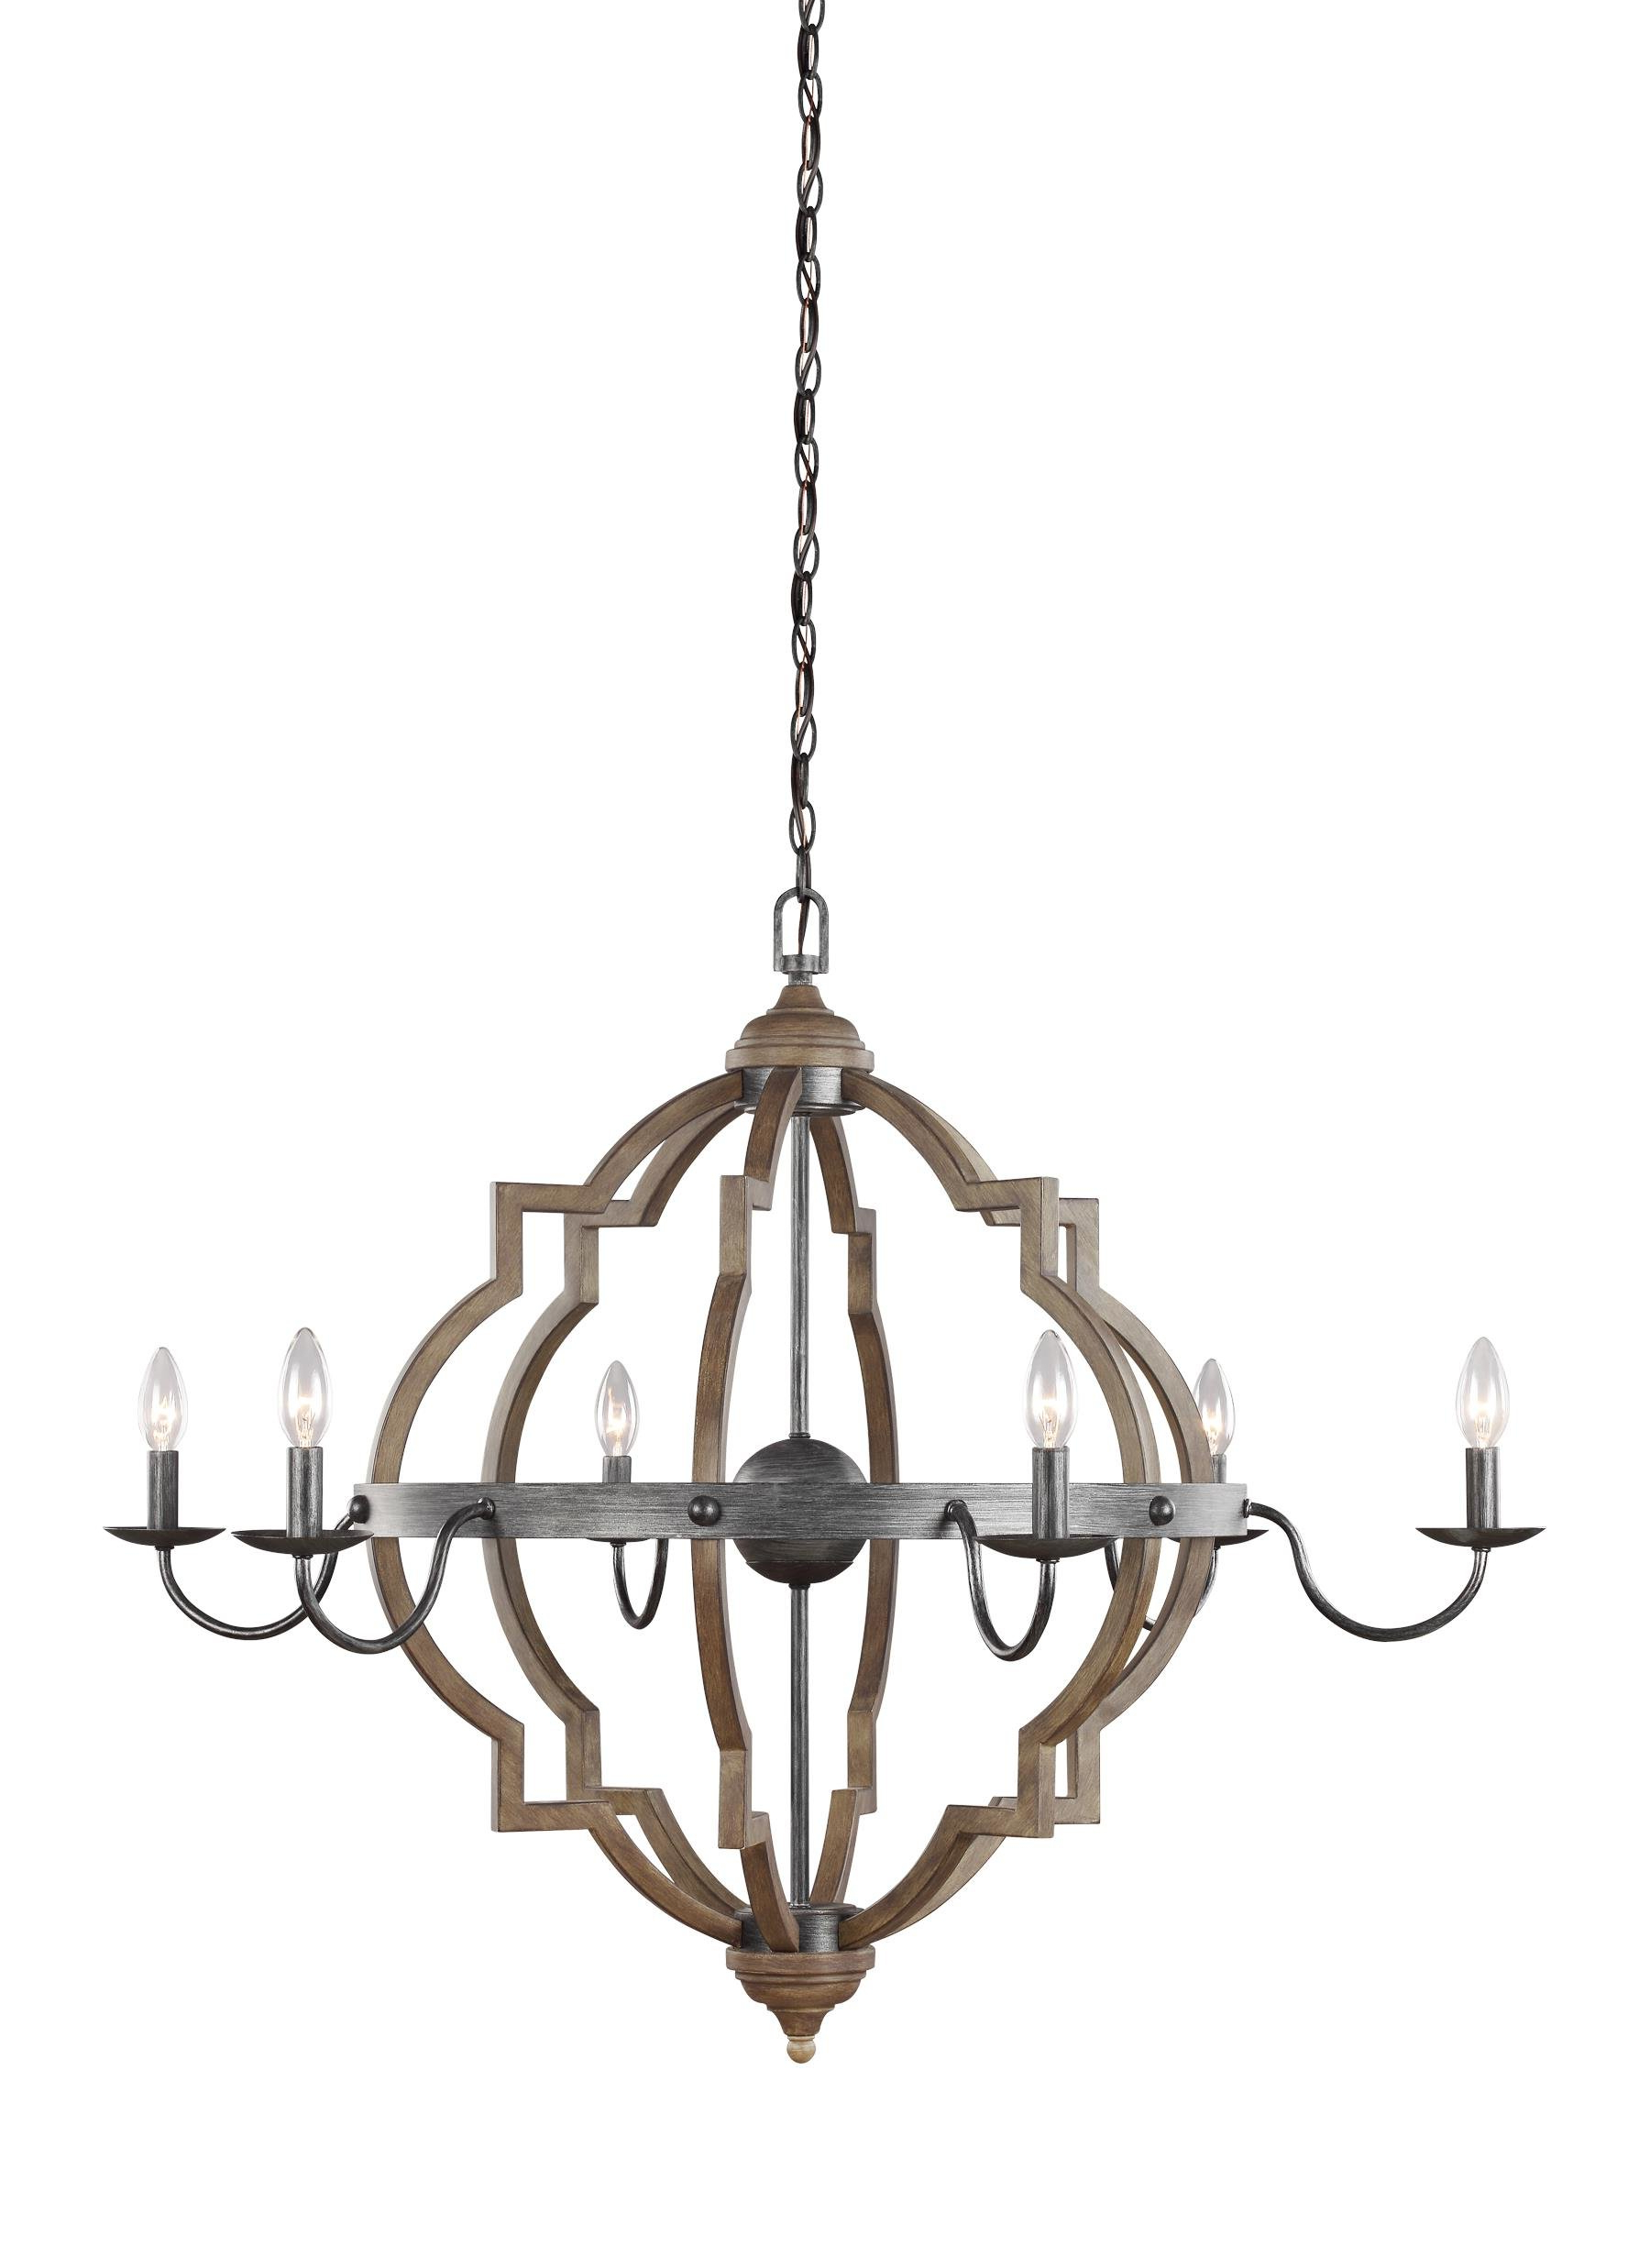 2020 Shaylee 6 Light Candle Style Chandeliers With Donna 6 Light Candle Style Chandelier (View 10 of 25)